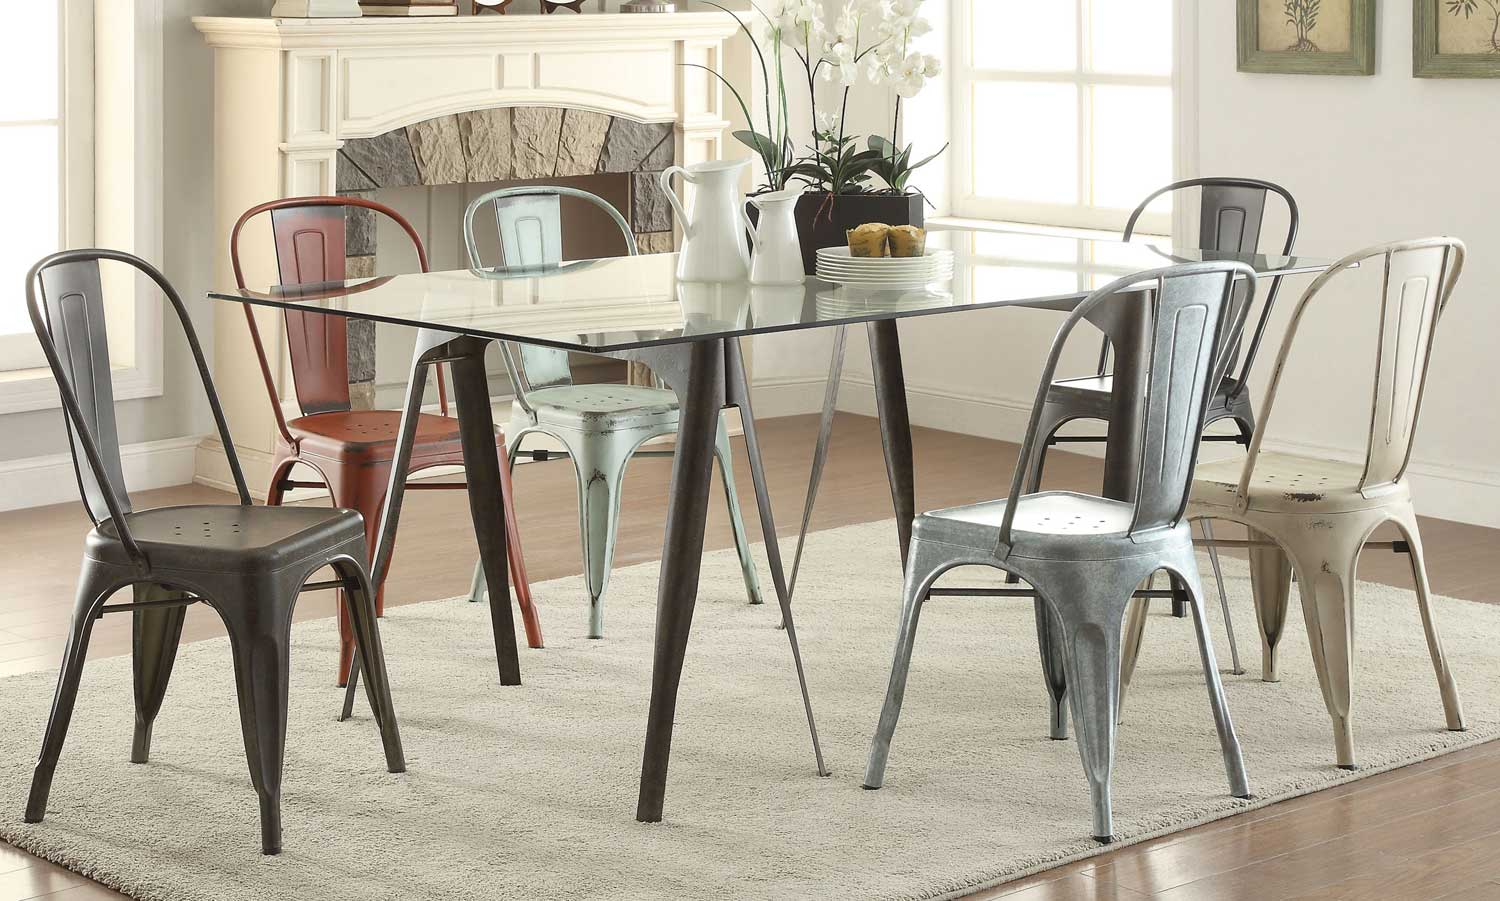 Coaster Bellevue Glass Dining Set - Antique Rustic